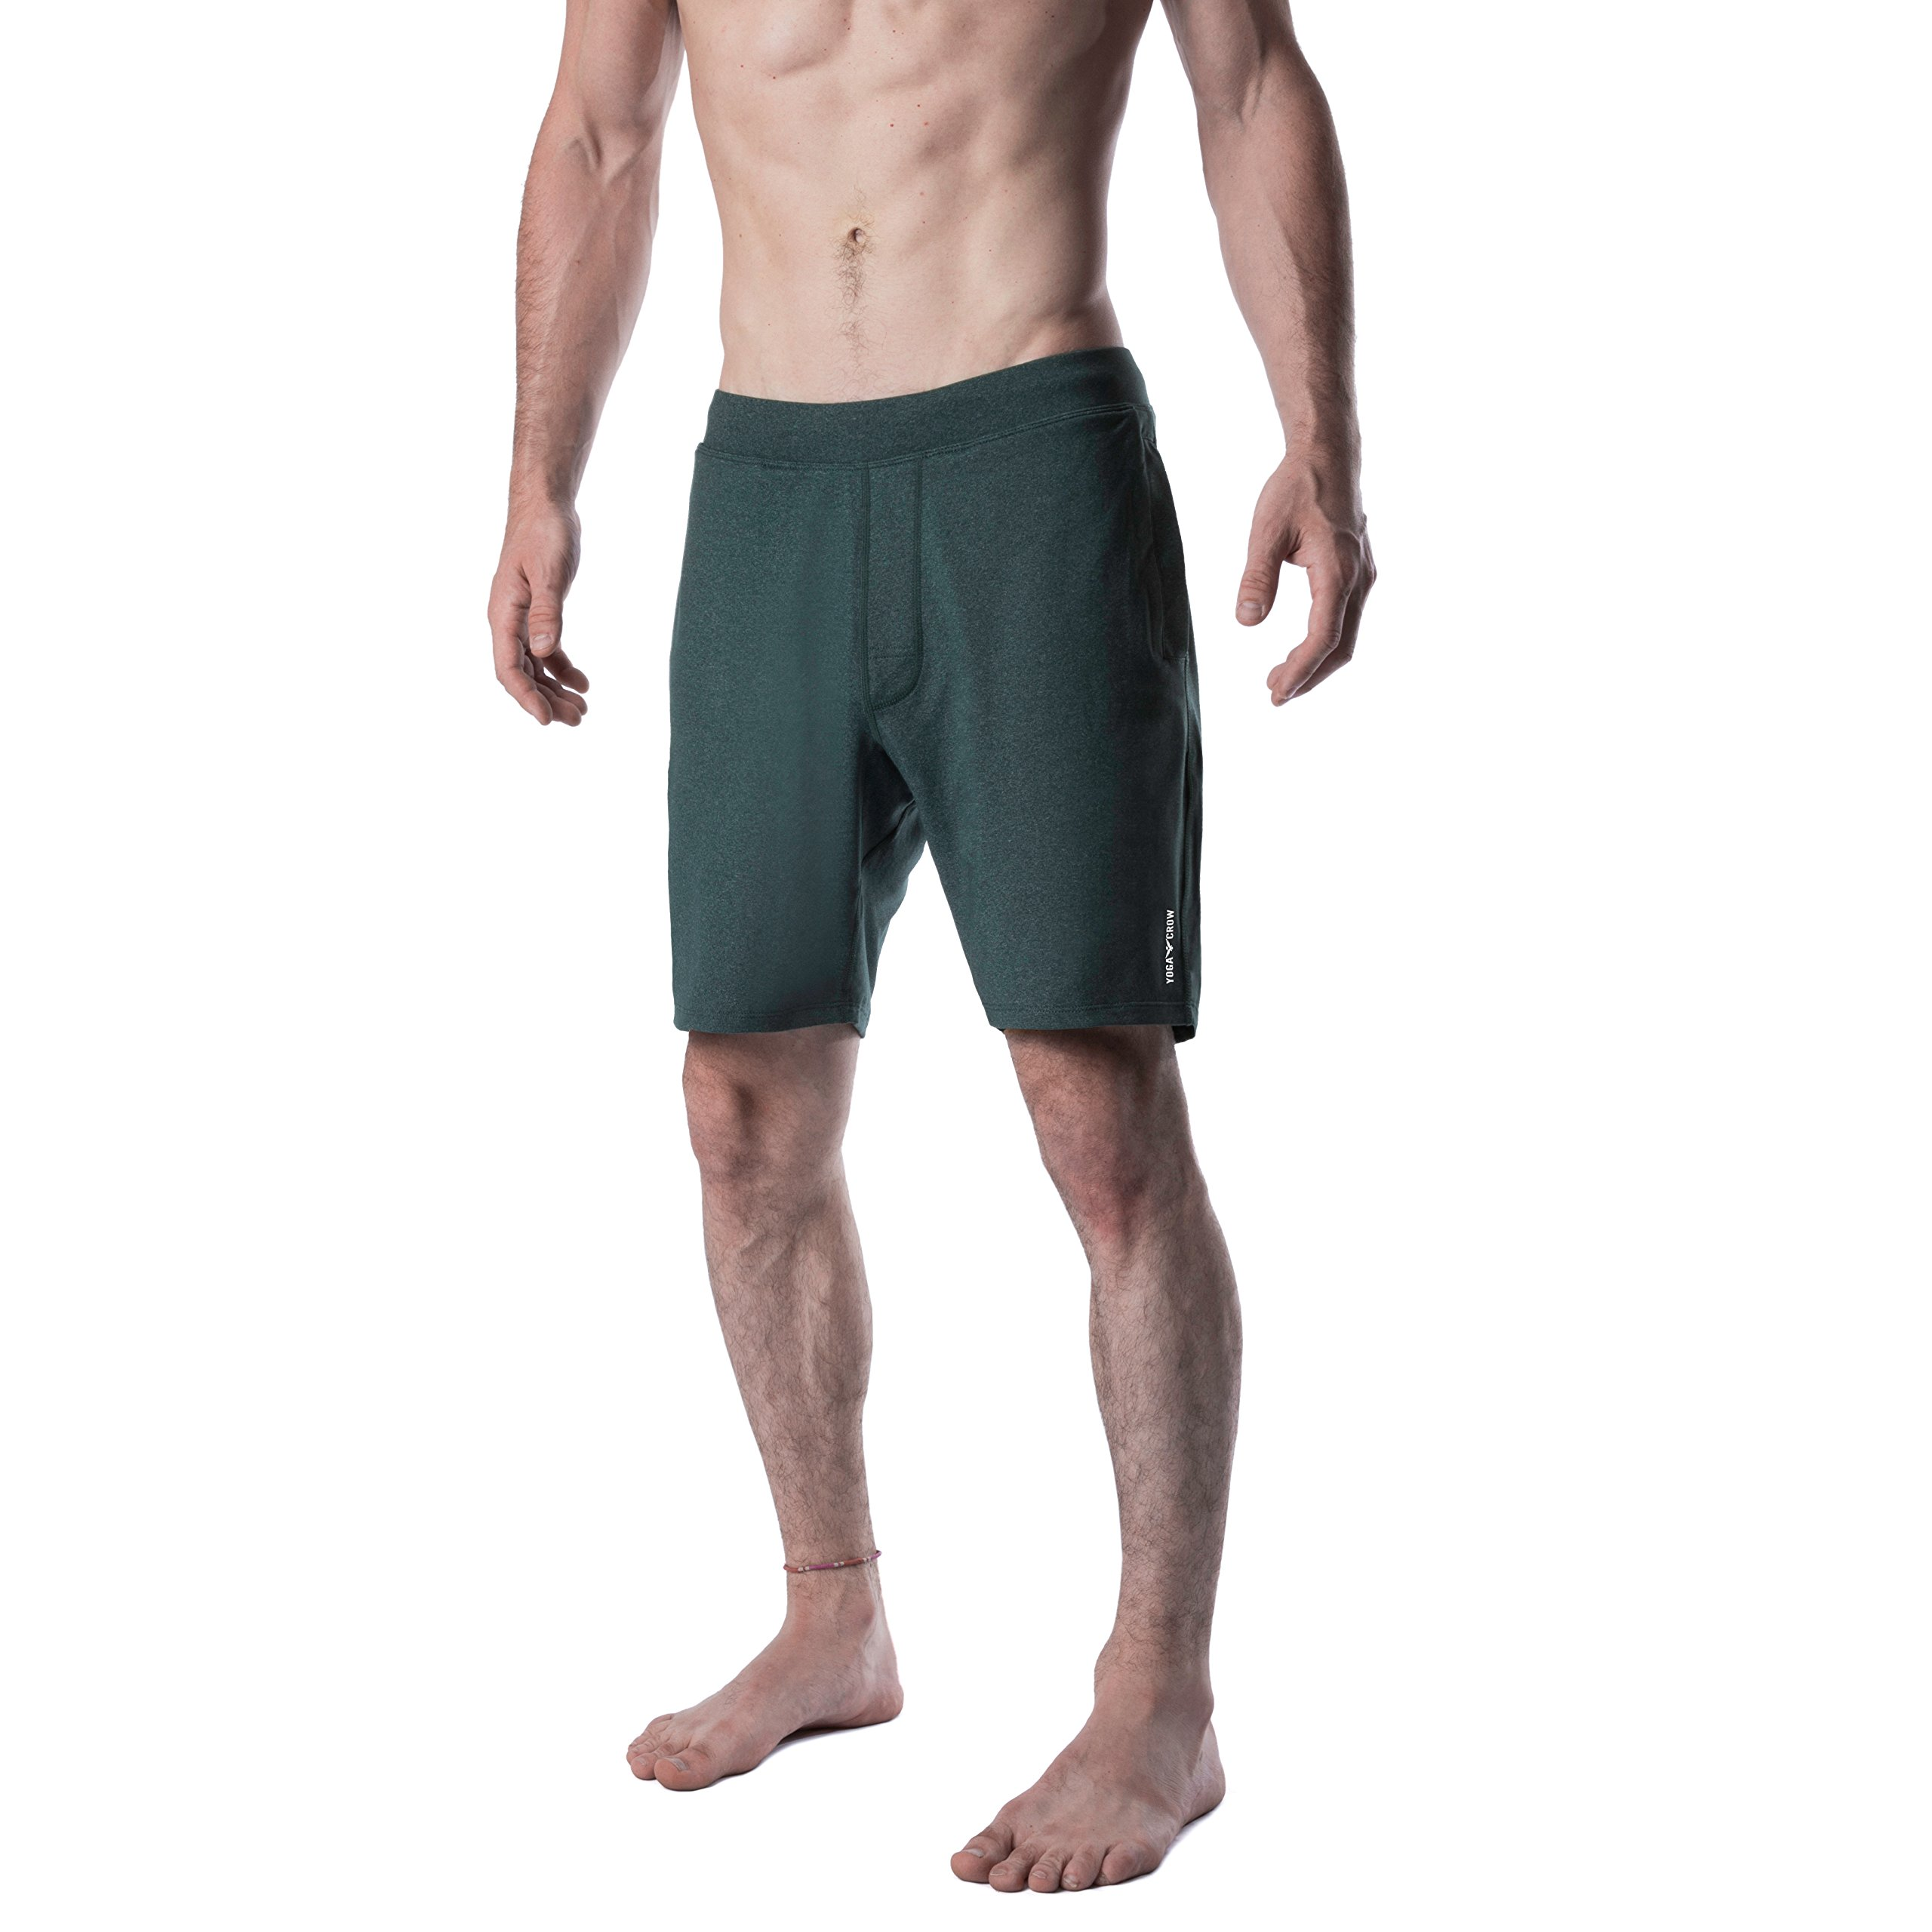 553a283d5d36 Best Rated in Men's Athletic Shorts & Helpful Customer Reviews ...